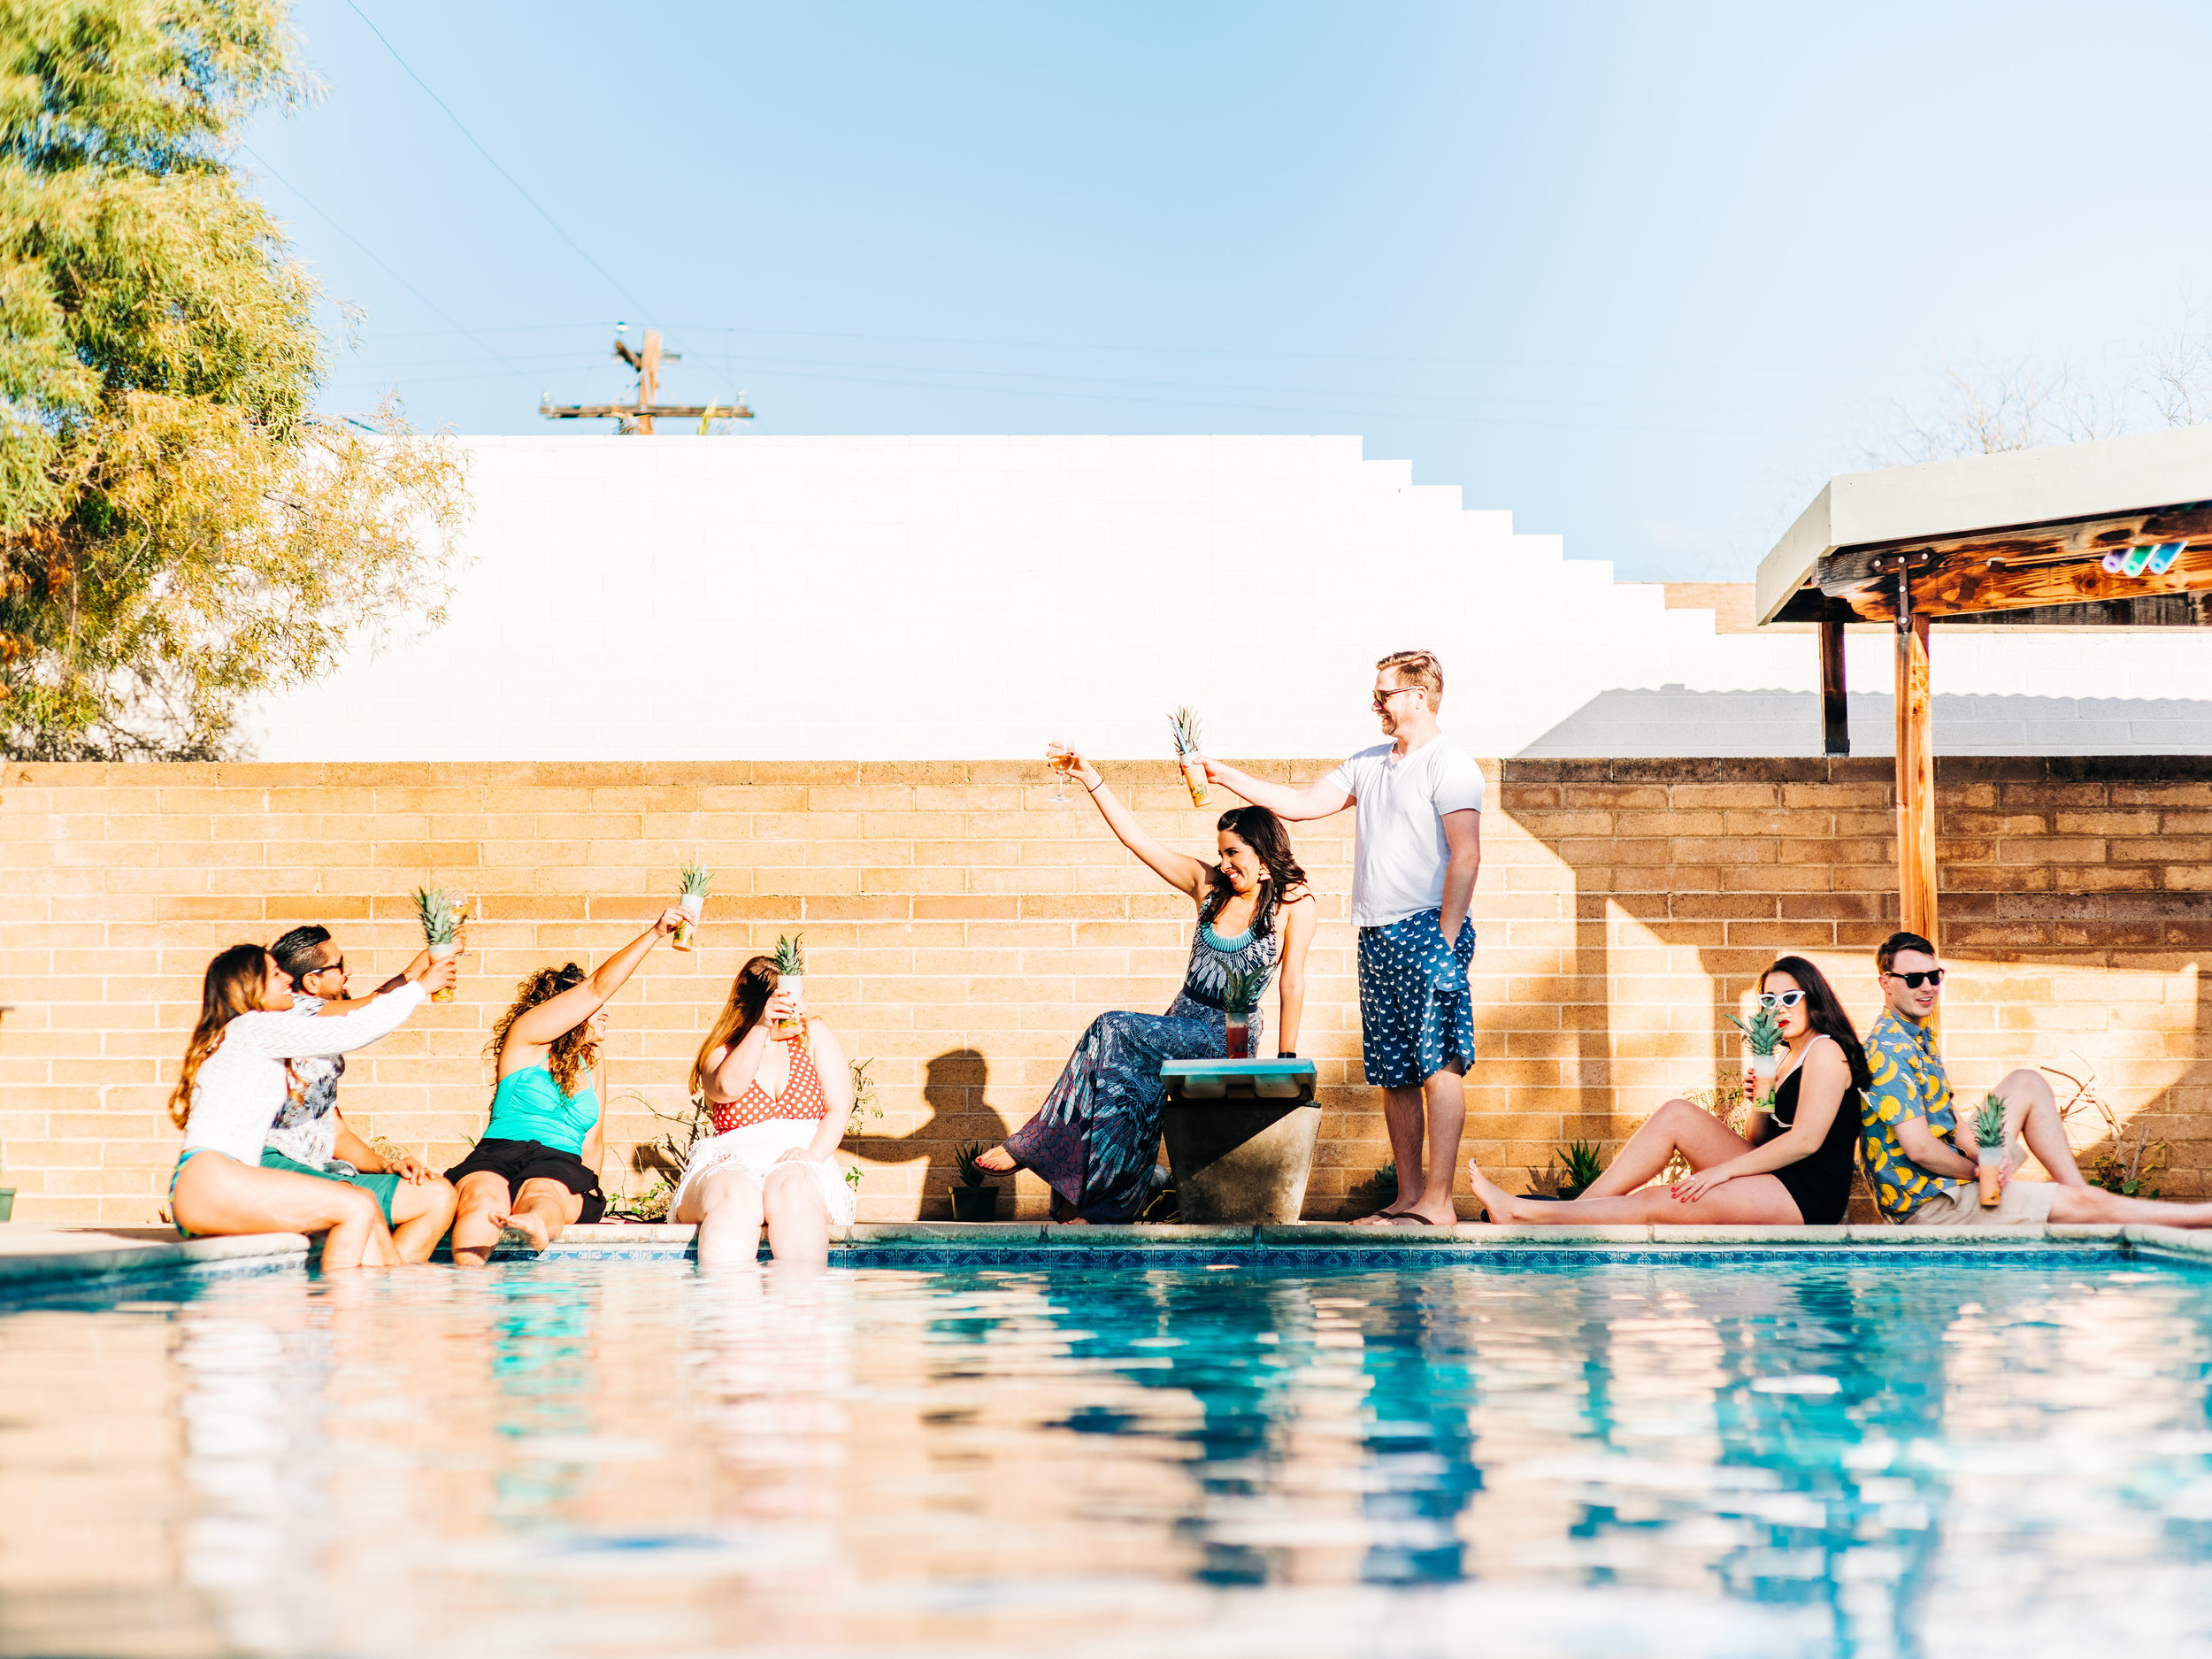 Andy-Shepard-Photography-Tucson-Pool-Party-63.jpg